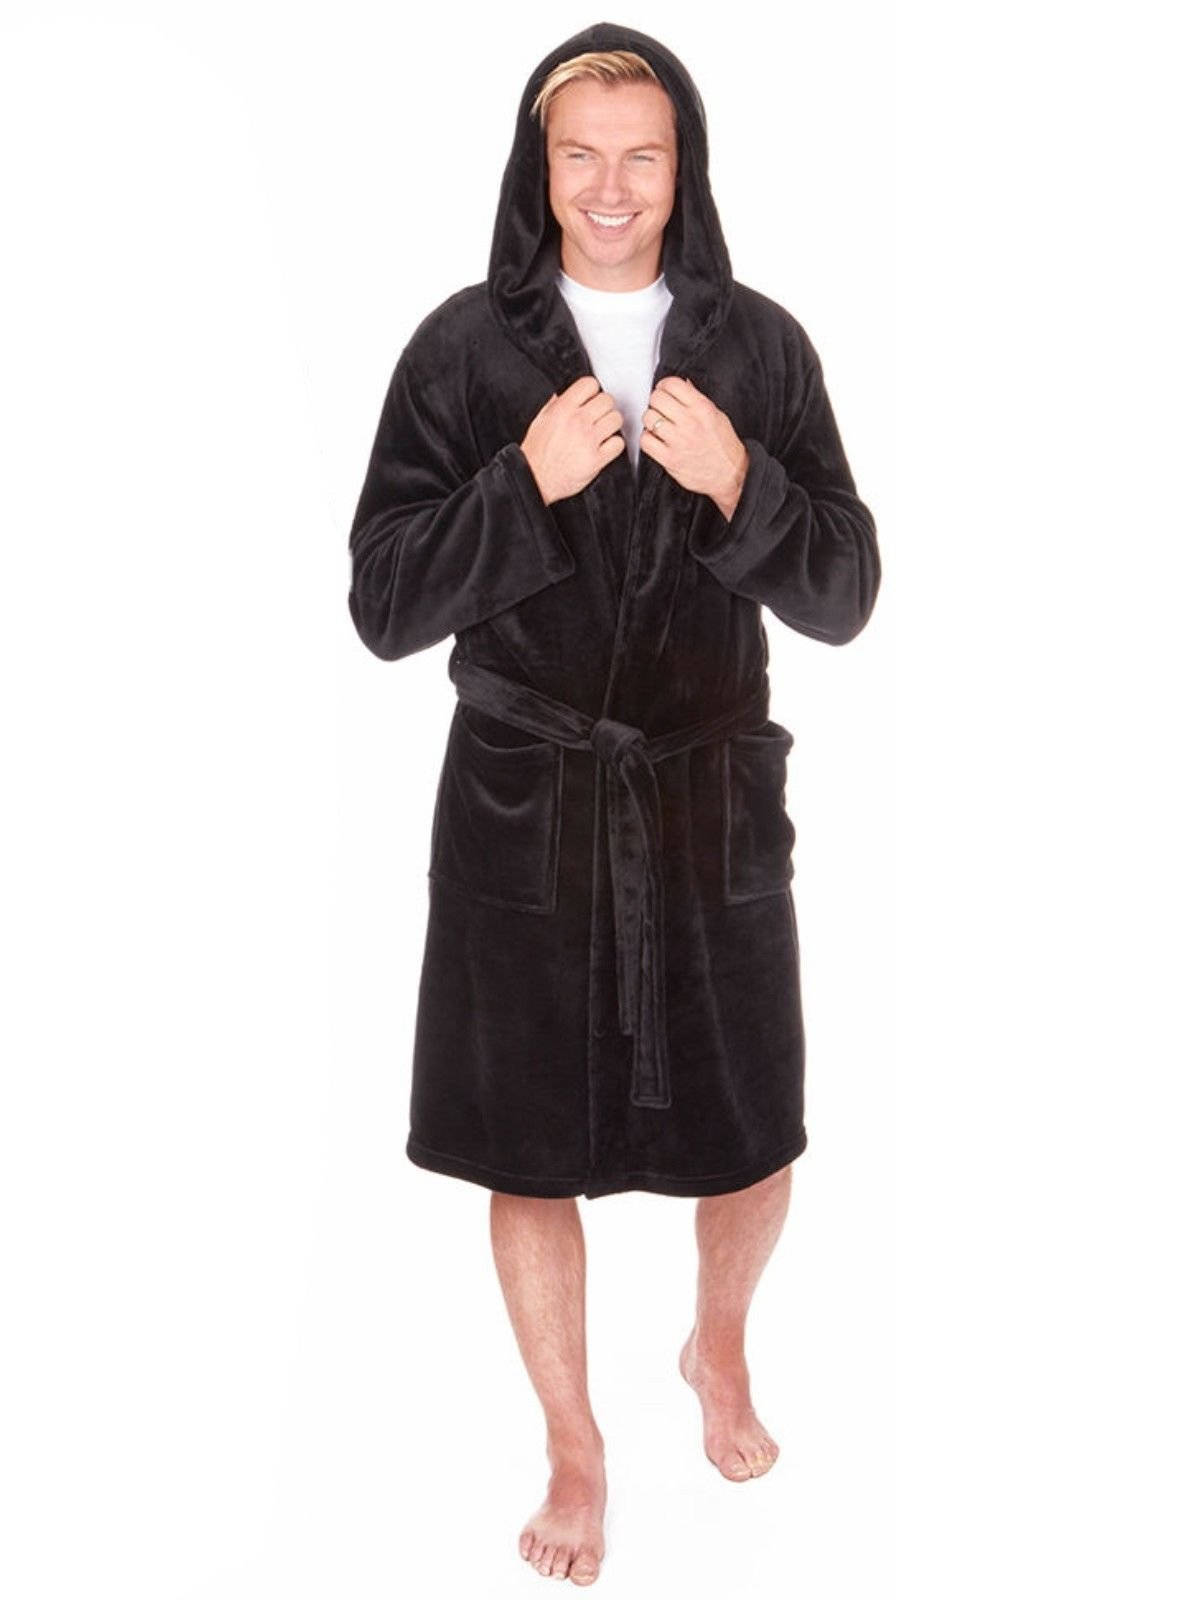 MICHAEL PAUL Mens Hooded and Non Hooded Soft Plain Dressing Gown